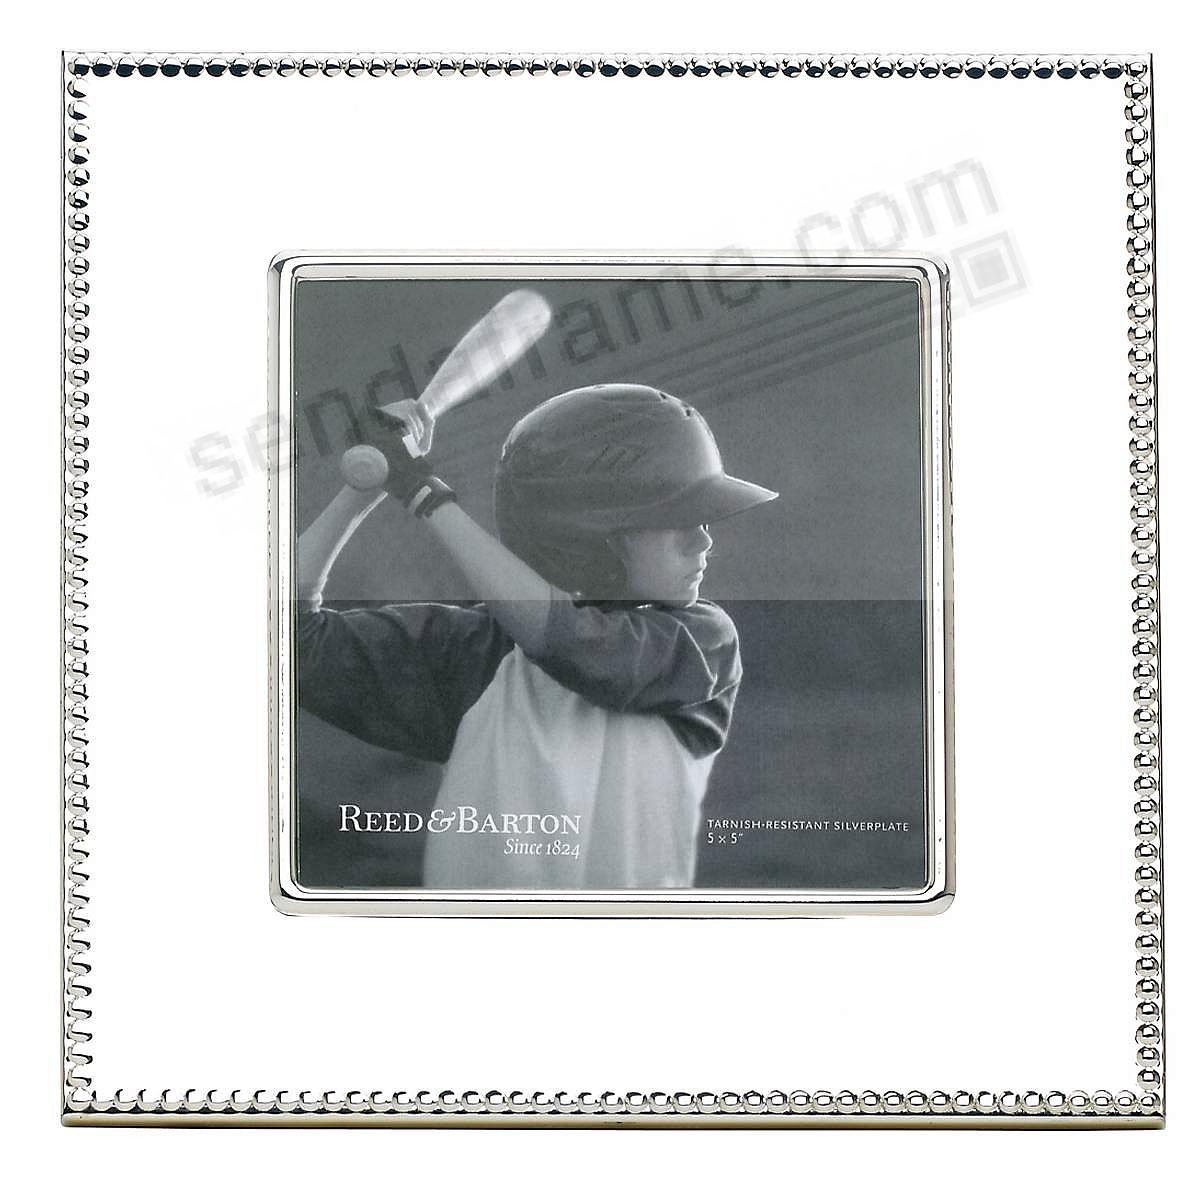 LYNDON special proof size 5x5 frame by Reed & Barton®